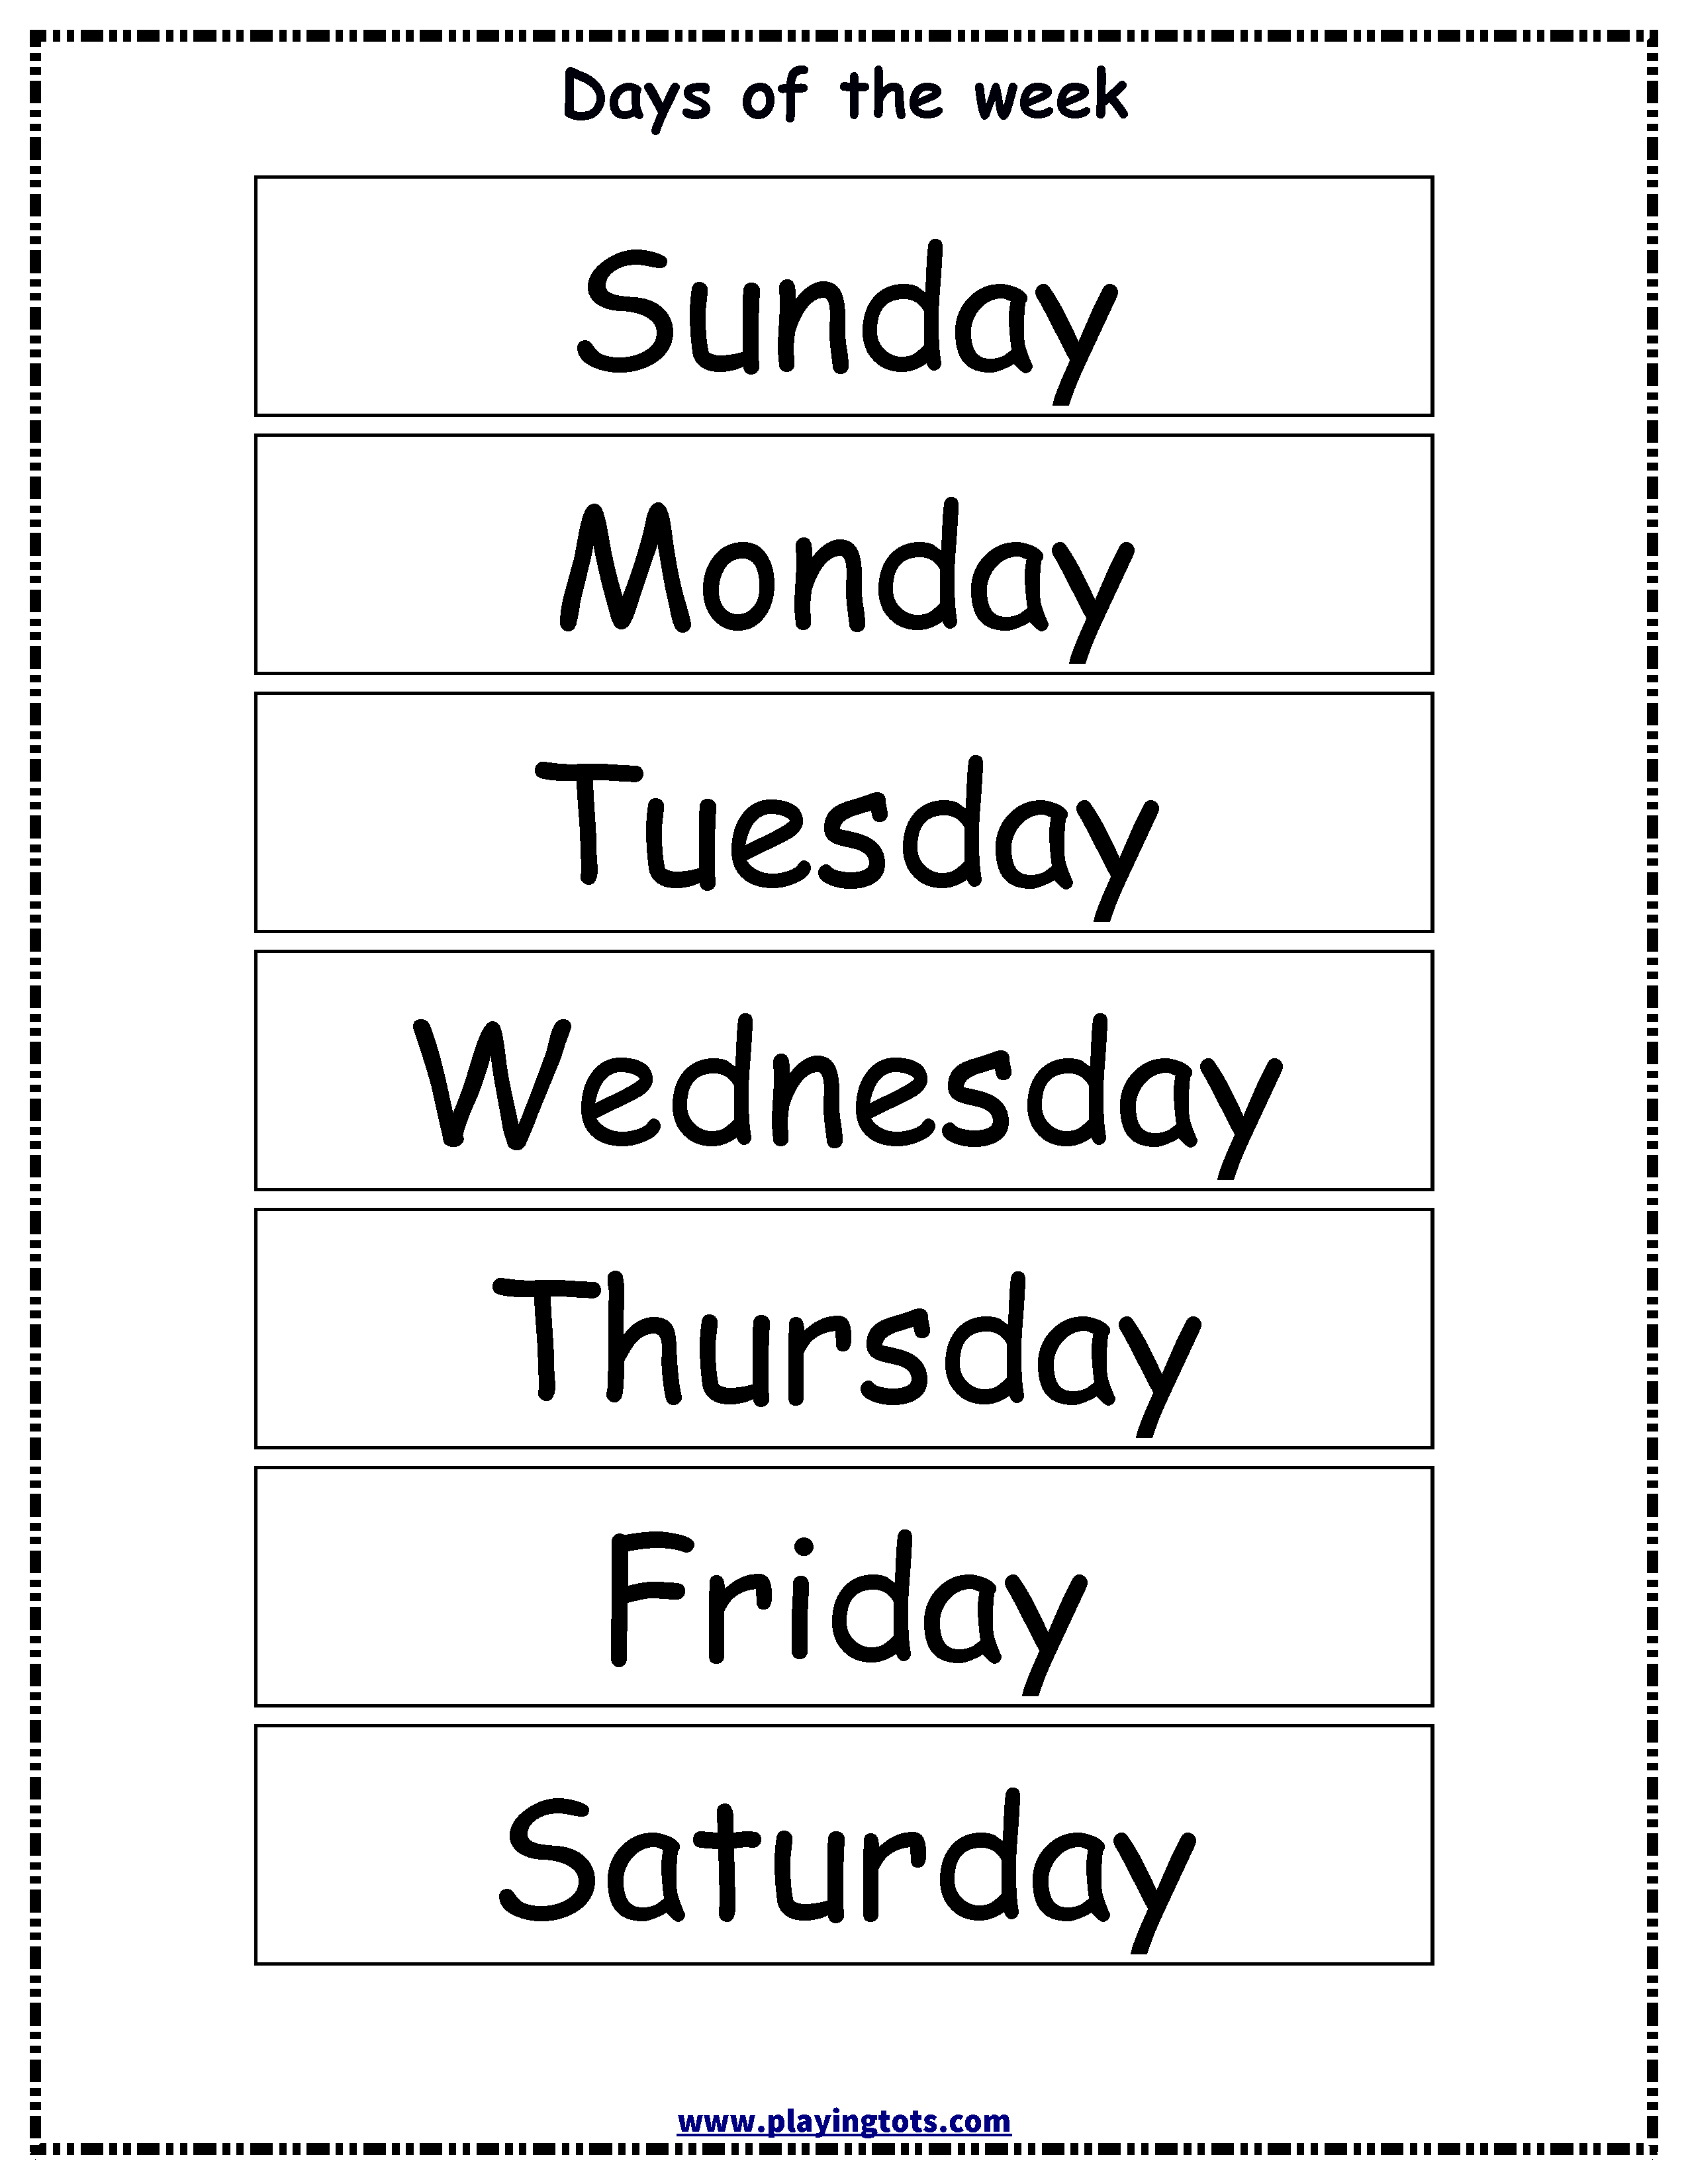 Free Printable Days Of The Week Chart | Classroom Ideas | Flashcards - Free Printable Days Of The Week